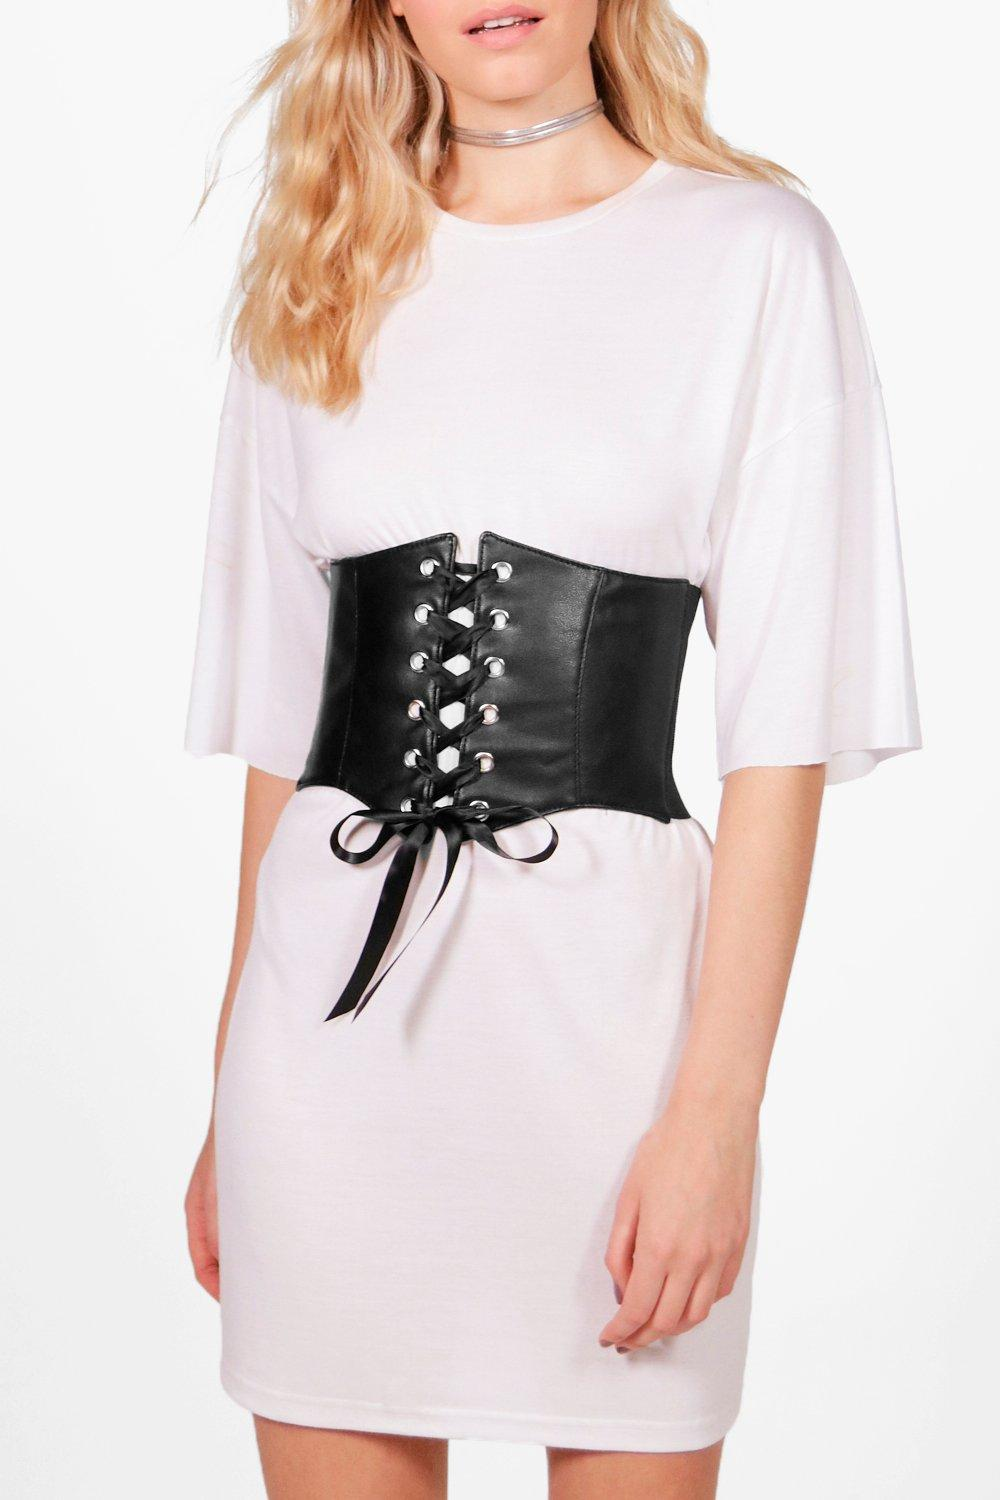 PU Lace Up Corset Belt - black - Kelsey PU Lace Up